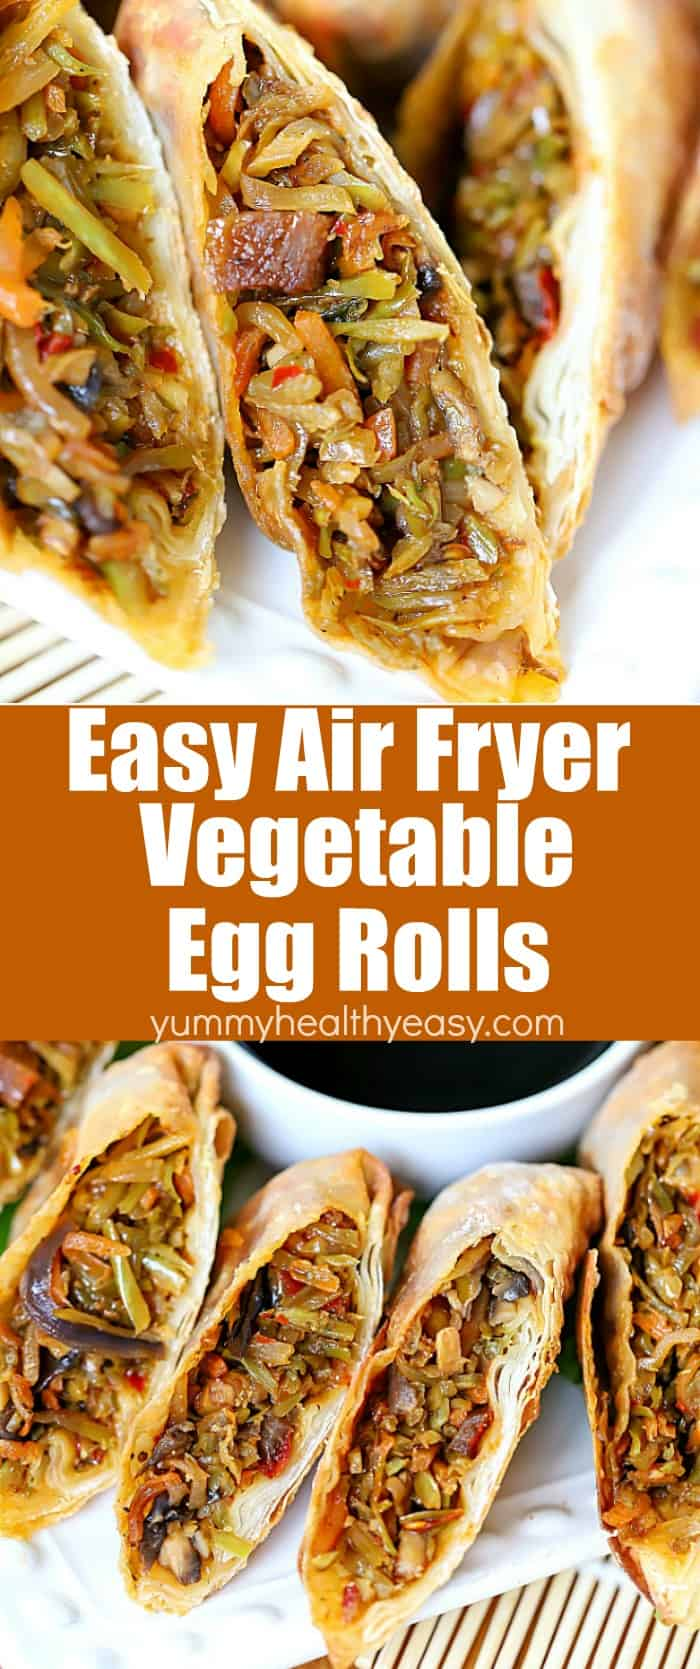 This delicious Homemade Vegetable Egg Roll Recipe is made healthier by being fried in the Air Fryer! Each egg roll is filled with healthy broccoli slaw, mushrooms, water chestnuts and Asian spices all wrapped in egg roll wrappers. They're super easy to make and only require a few ingredients. You will fall head over heels for this egg roll recipe!